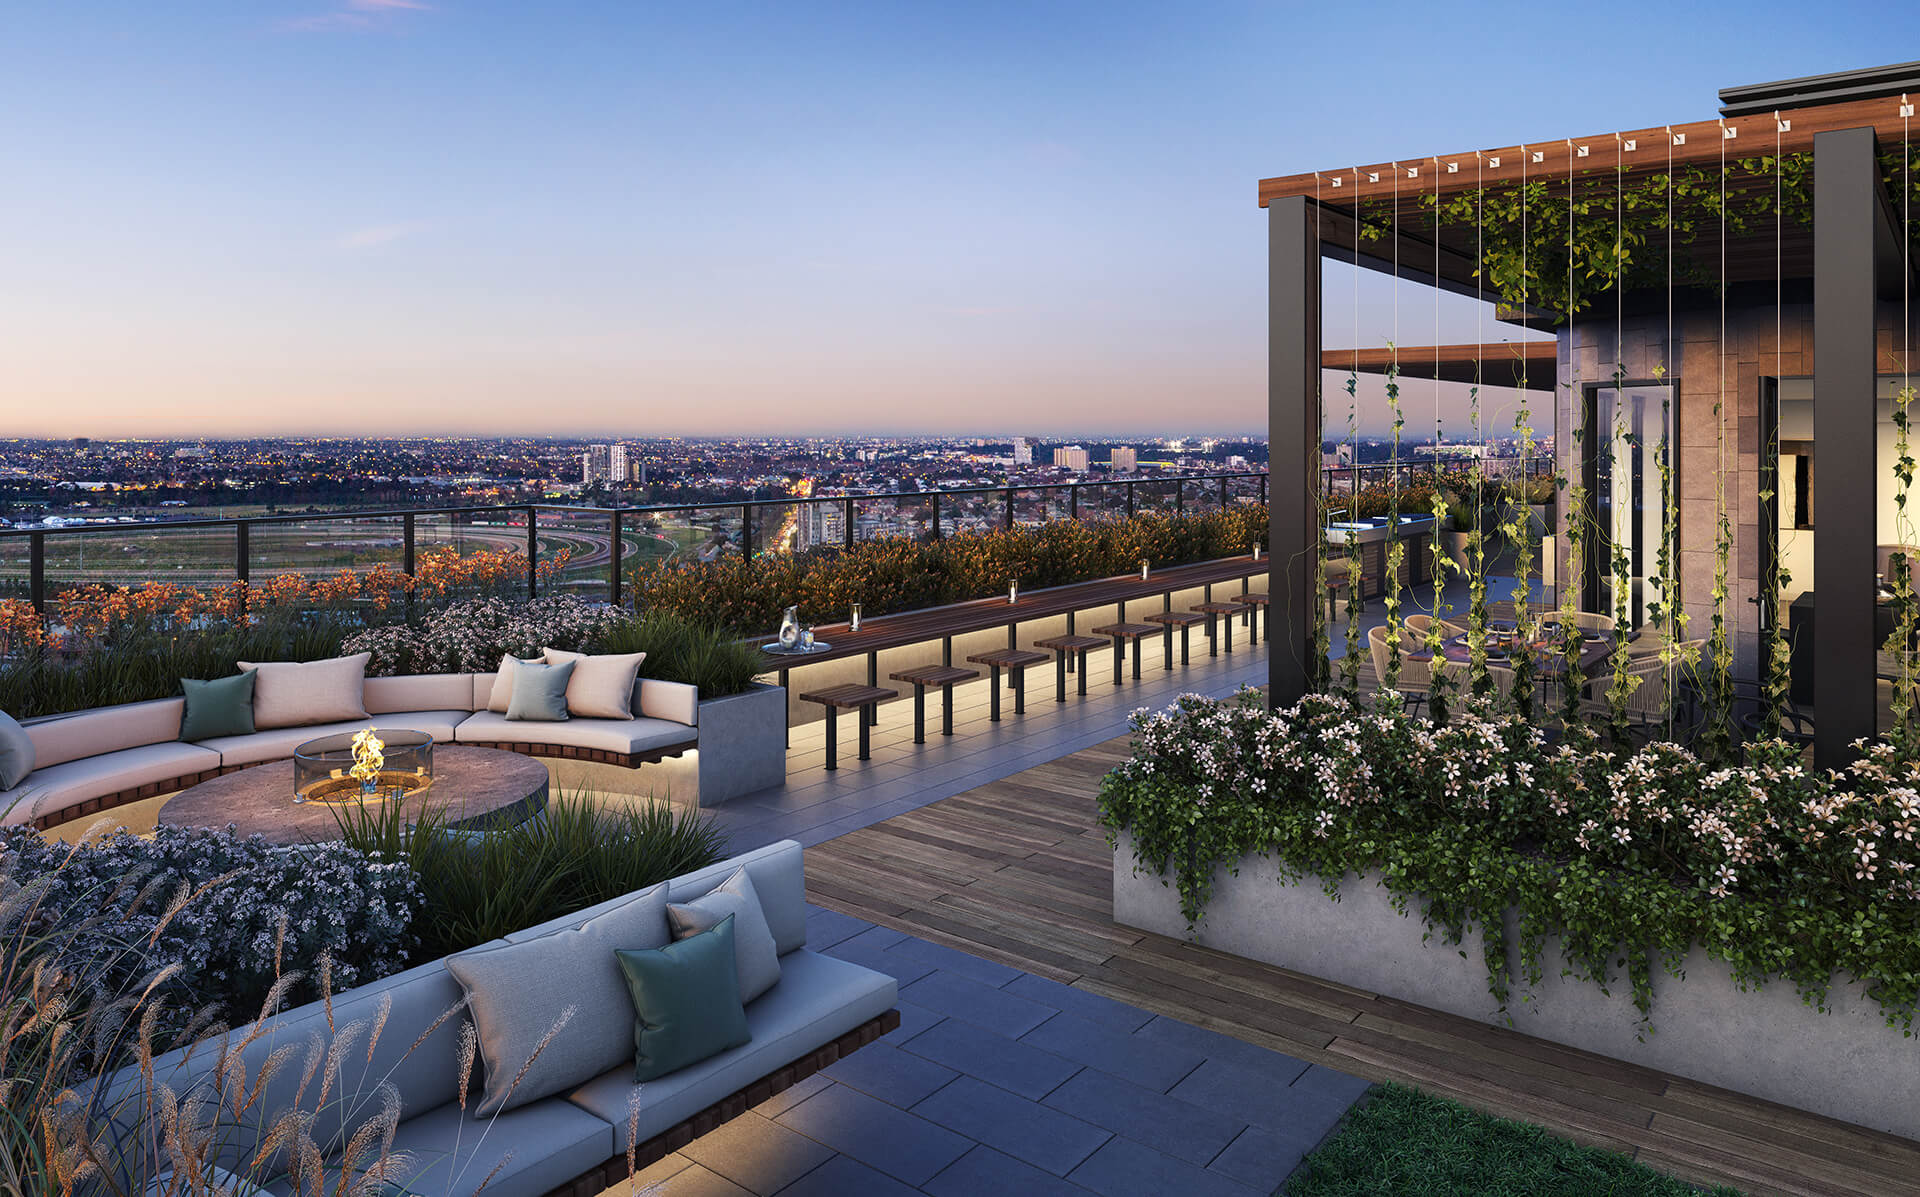 Rooftop - Outdoor Dining and BBQ